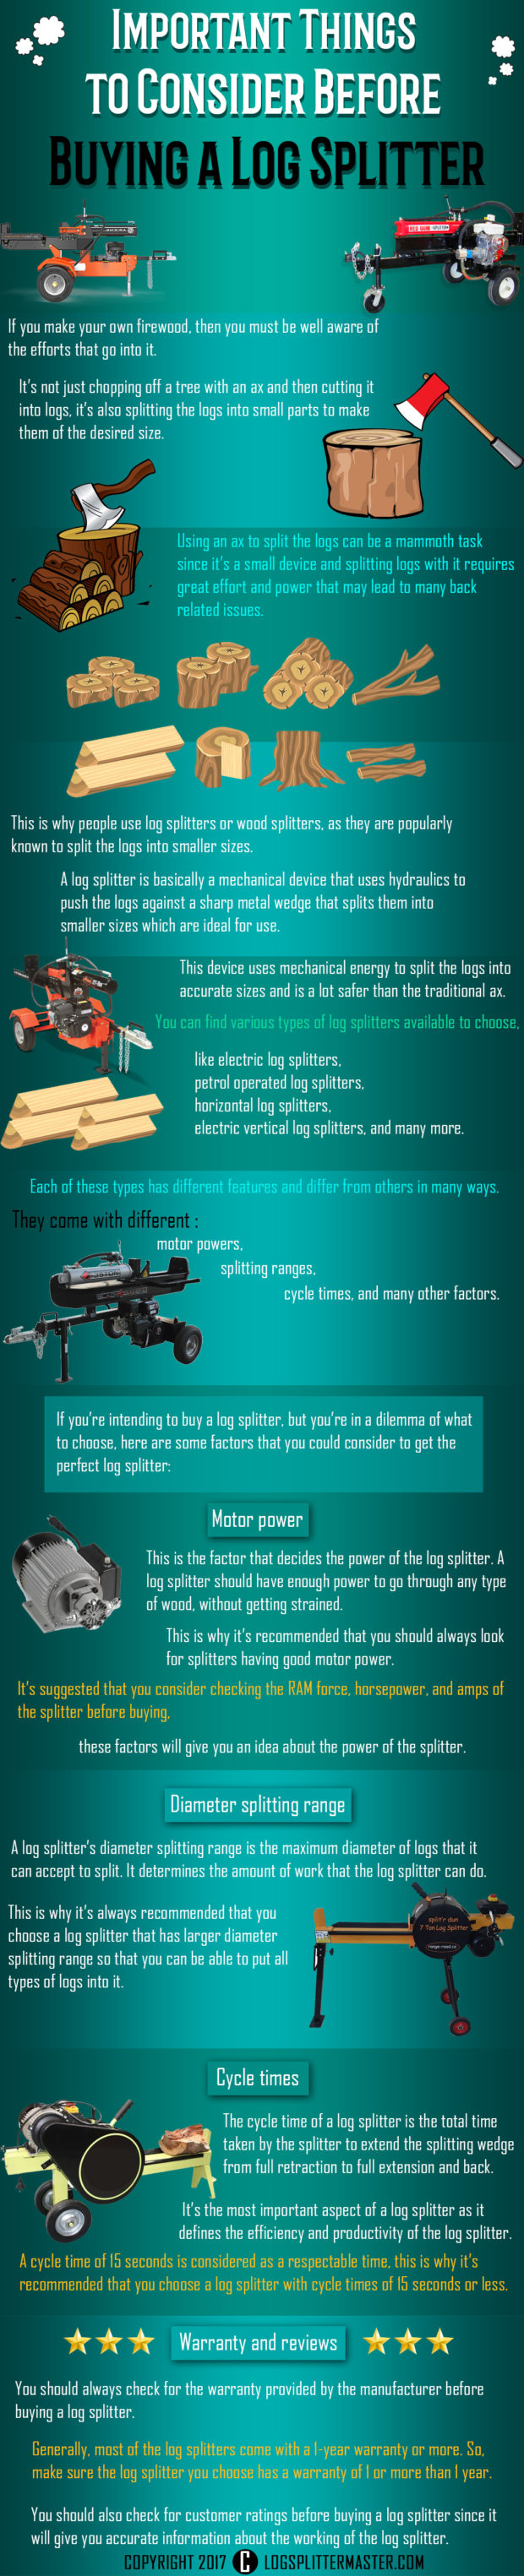 How To Choose The Best Log Splitter For Your Needs